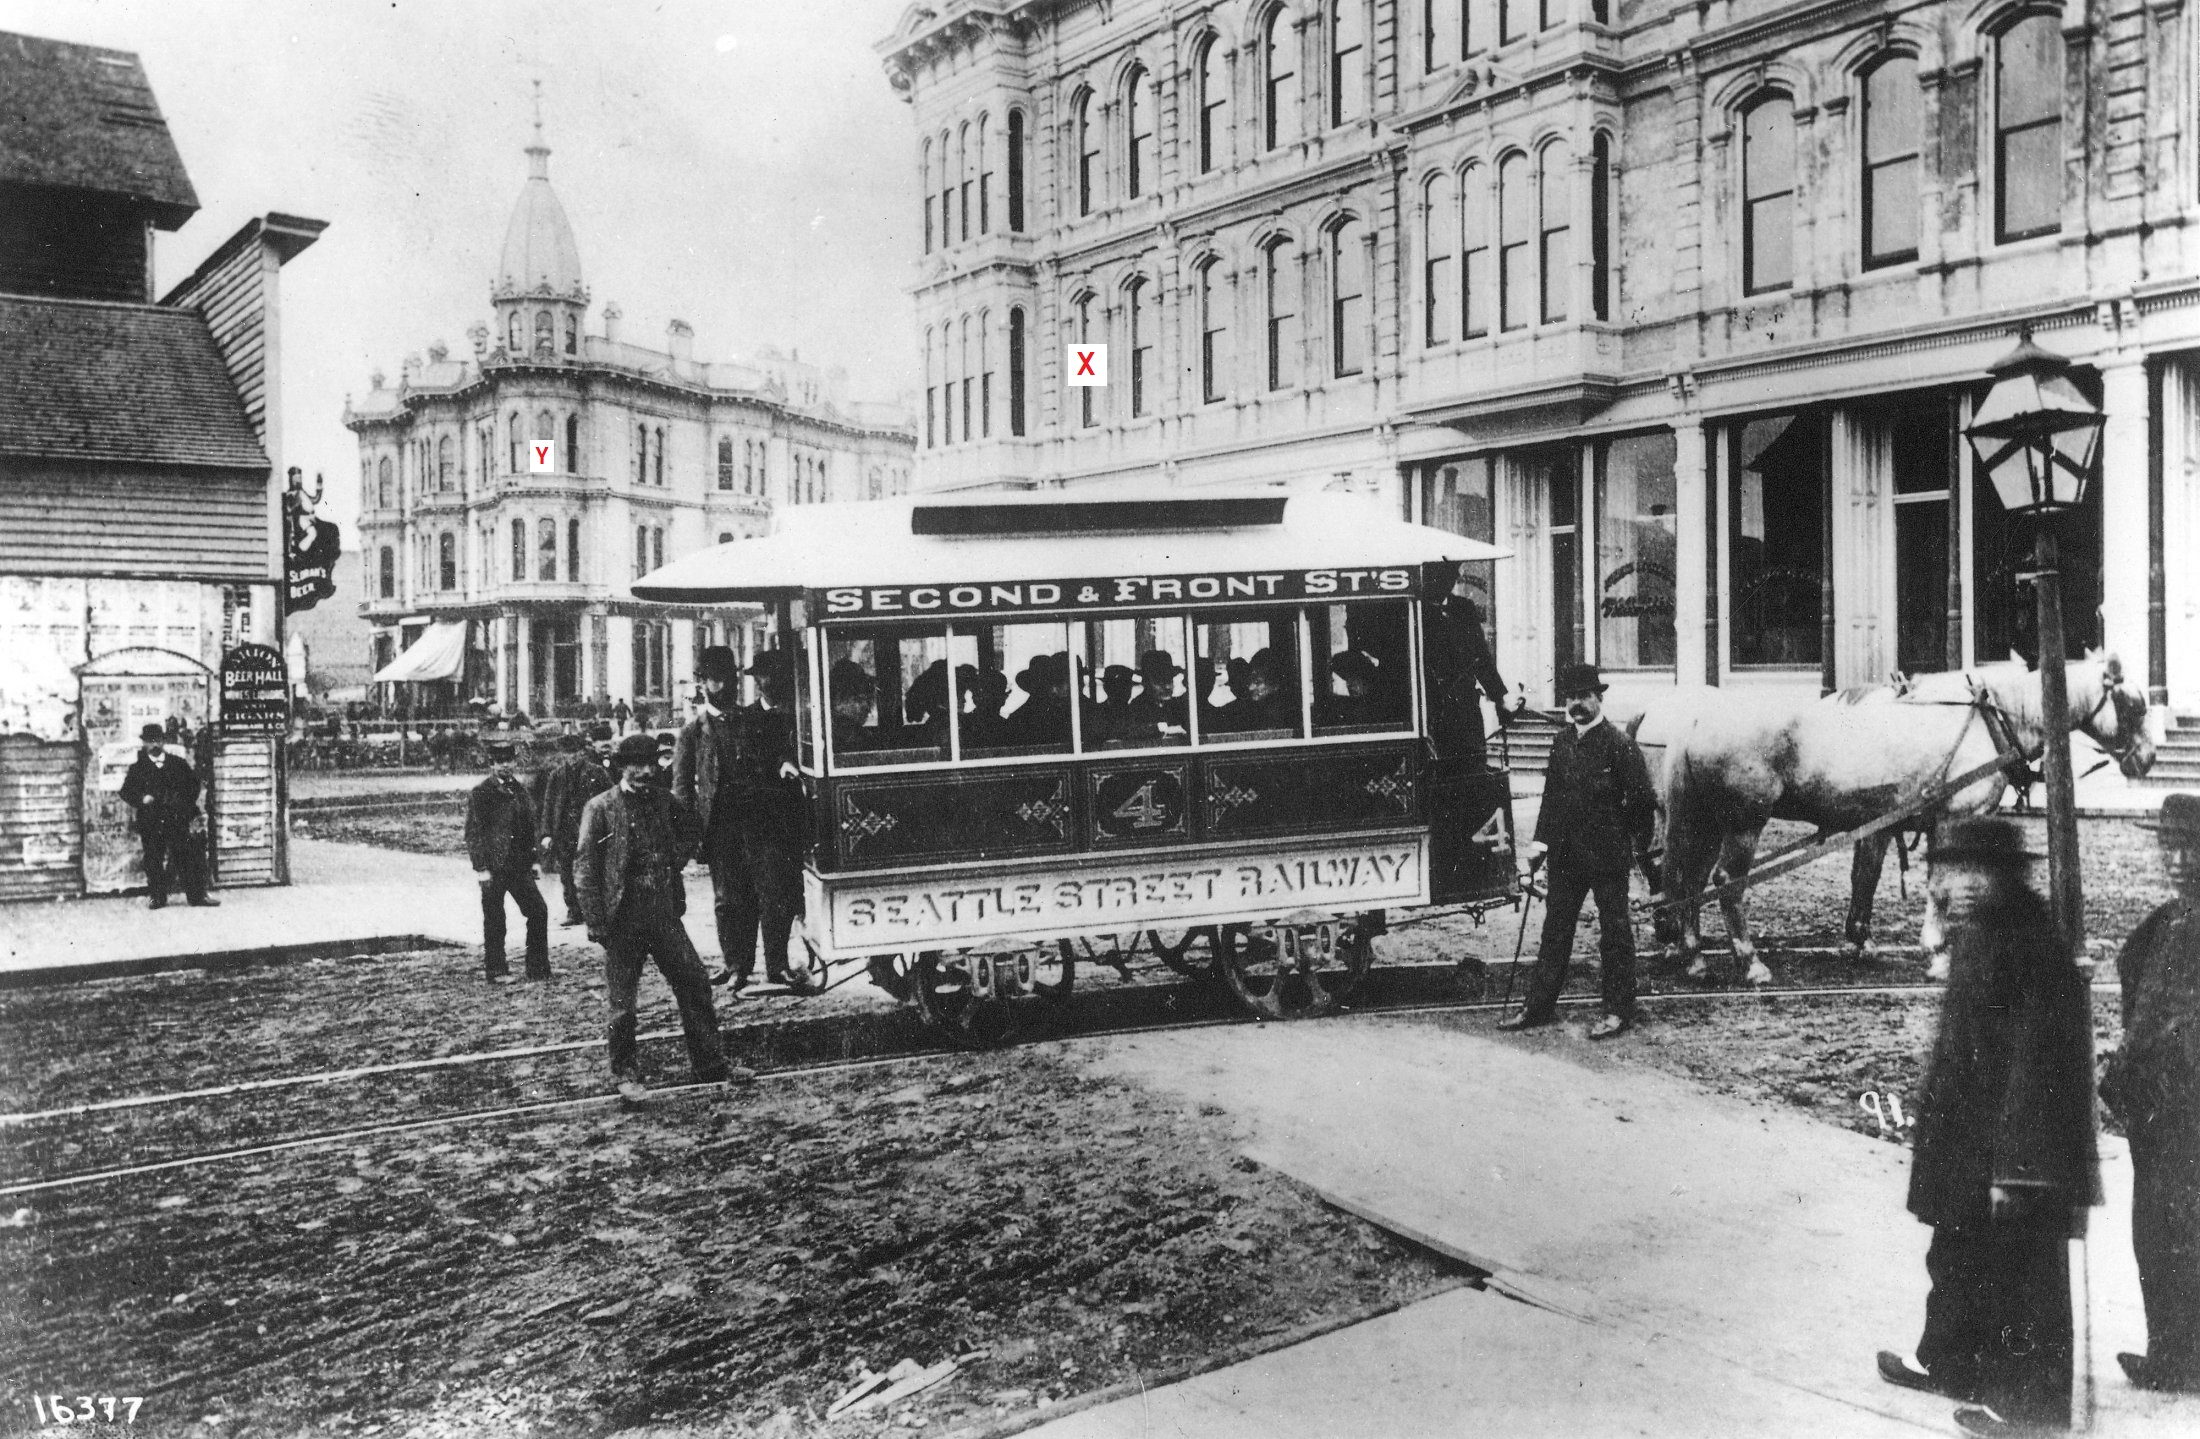 Seattle_Street_Railway,_the_first_streetcar_in_Seattle,_at_Occidental_Ave_and_Yesler_Way.jpeg